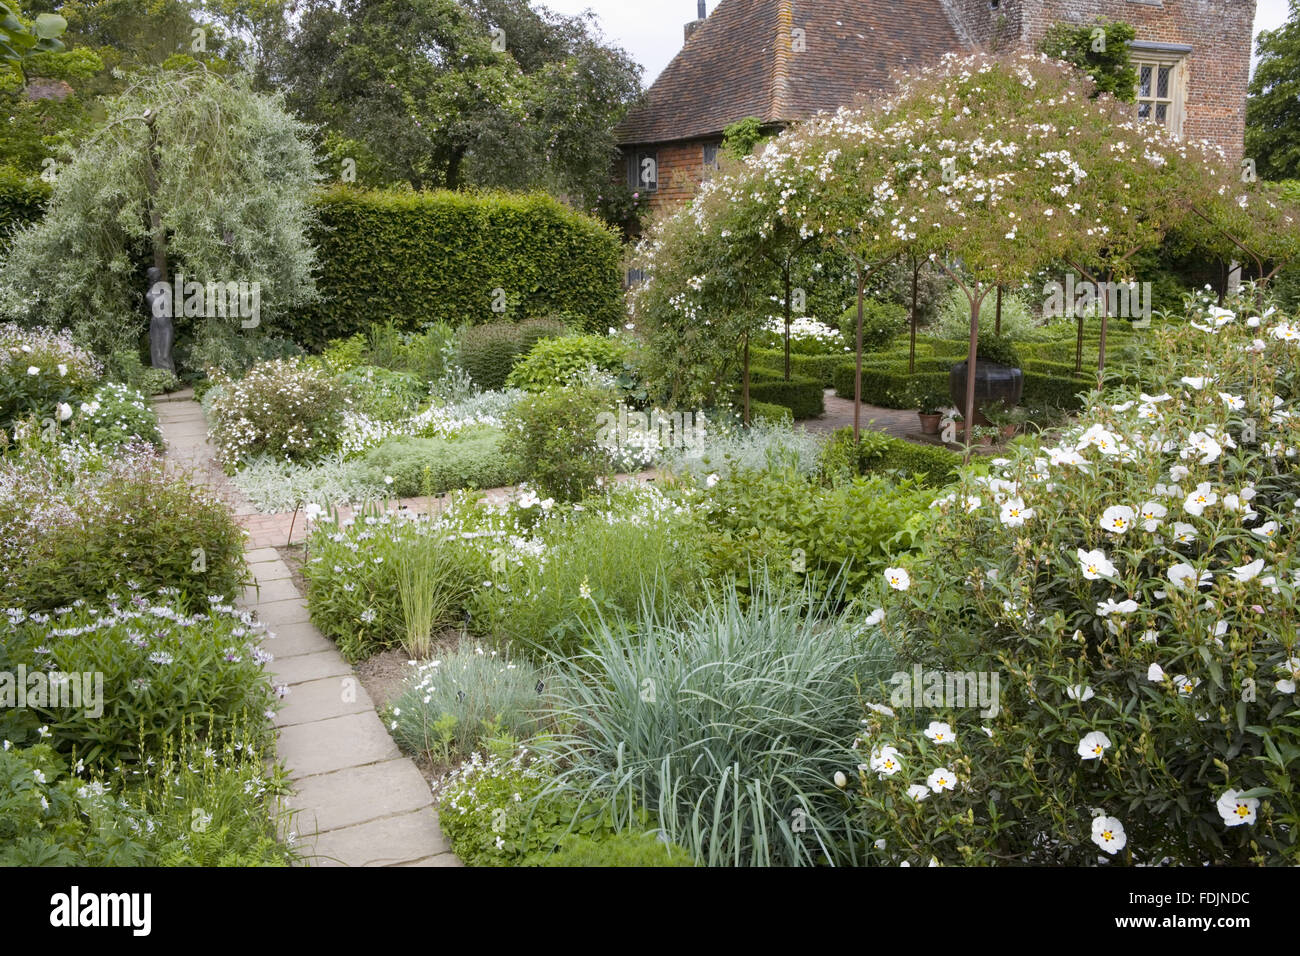 the white garden in june at sissinghurst castle garden near stock photo royalty free image. Black Bedroom Furniture Sets. Home Design Ideas